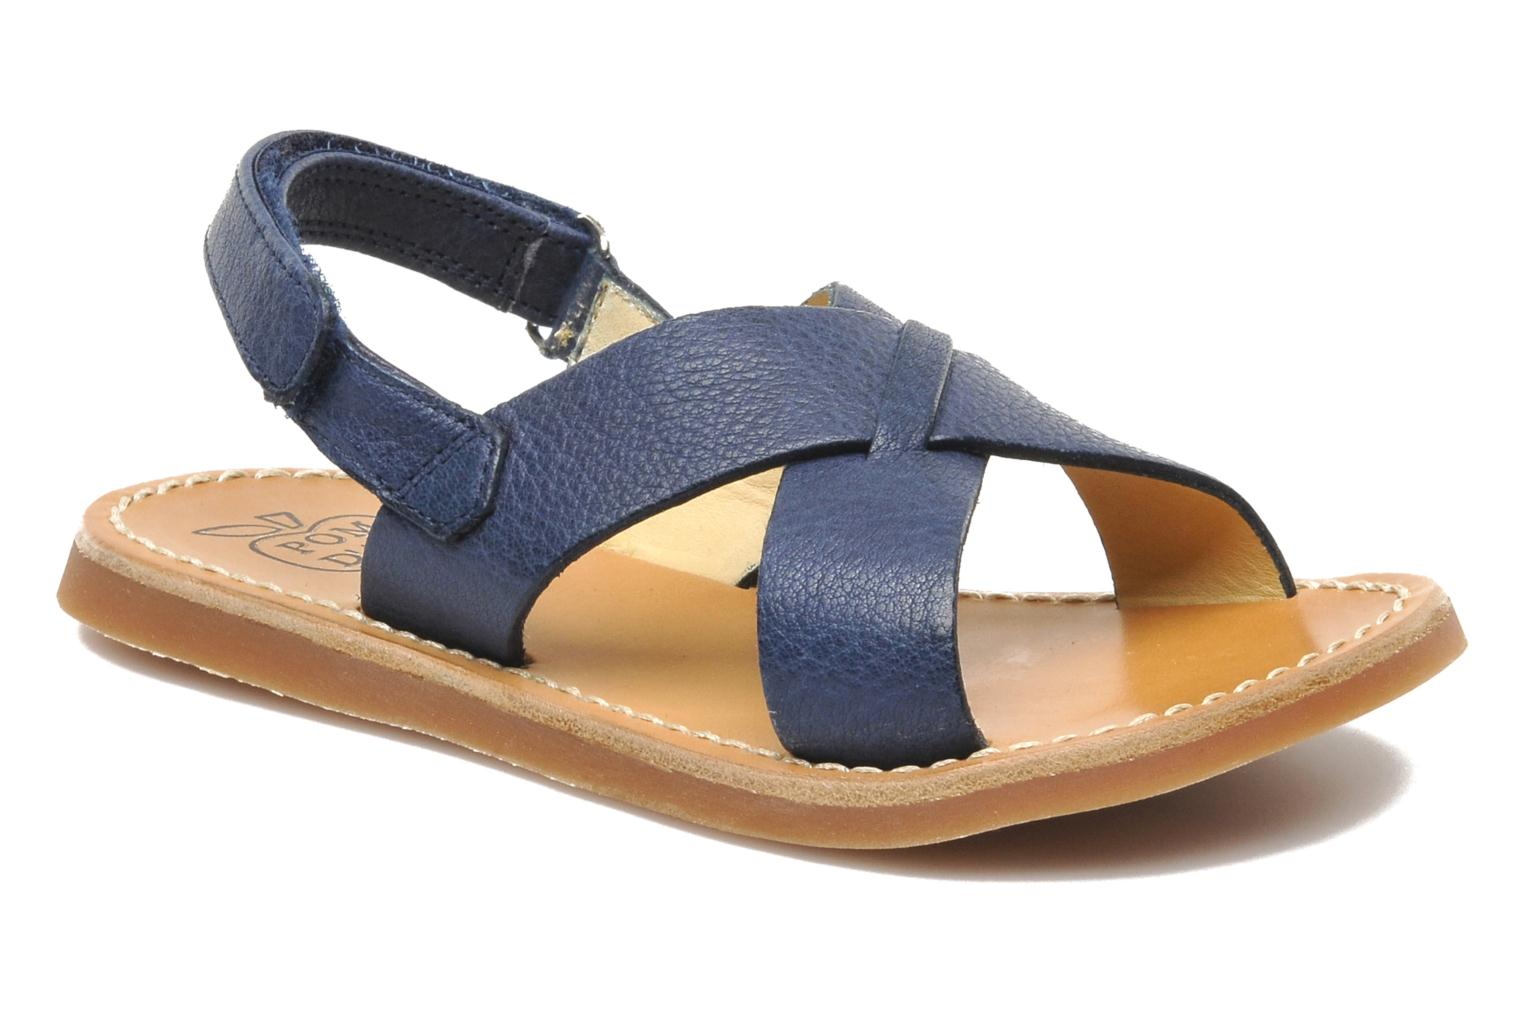 Free Shipping Excellent View FOOTWEAR - Sandals Pom dApi Wiki For Sale Newest siVfFj